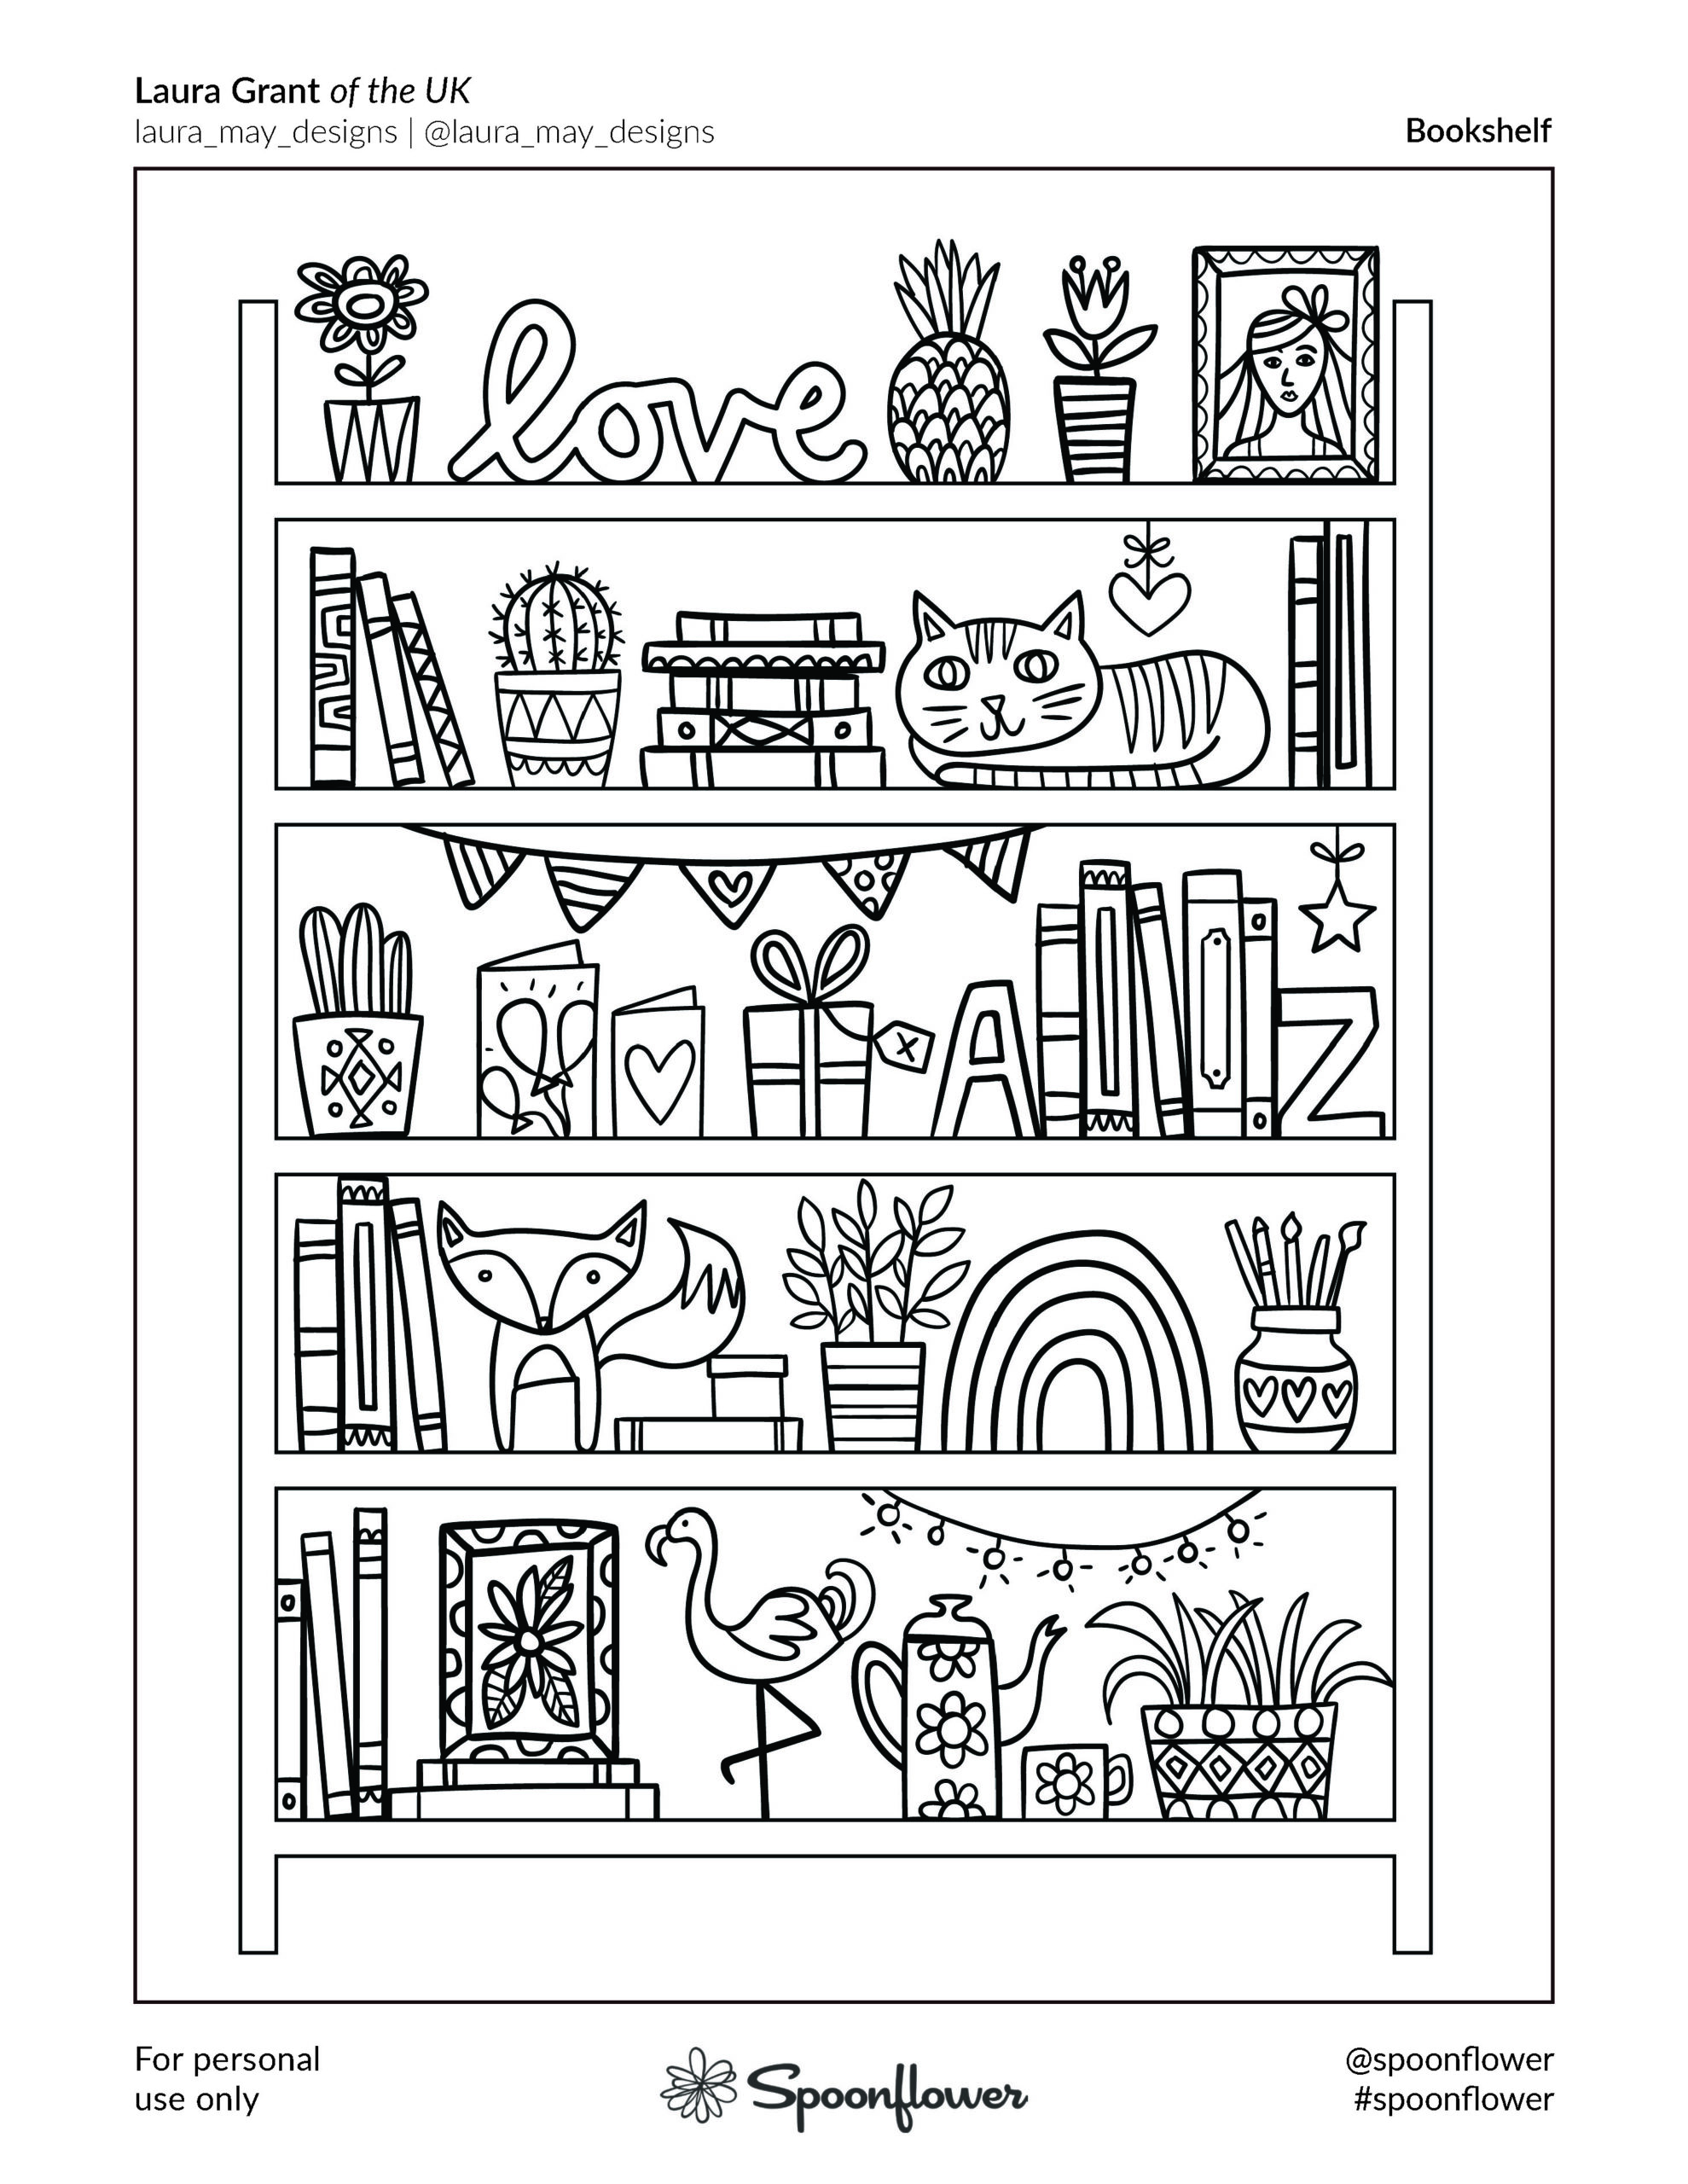 Coloring Book Page - Bookshelf by Laura Grant